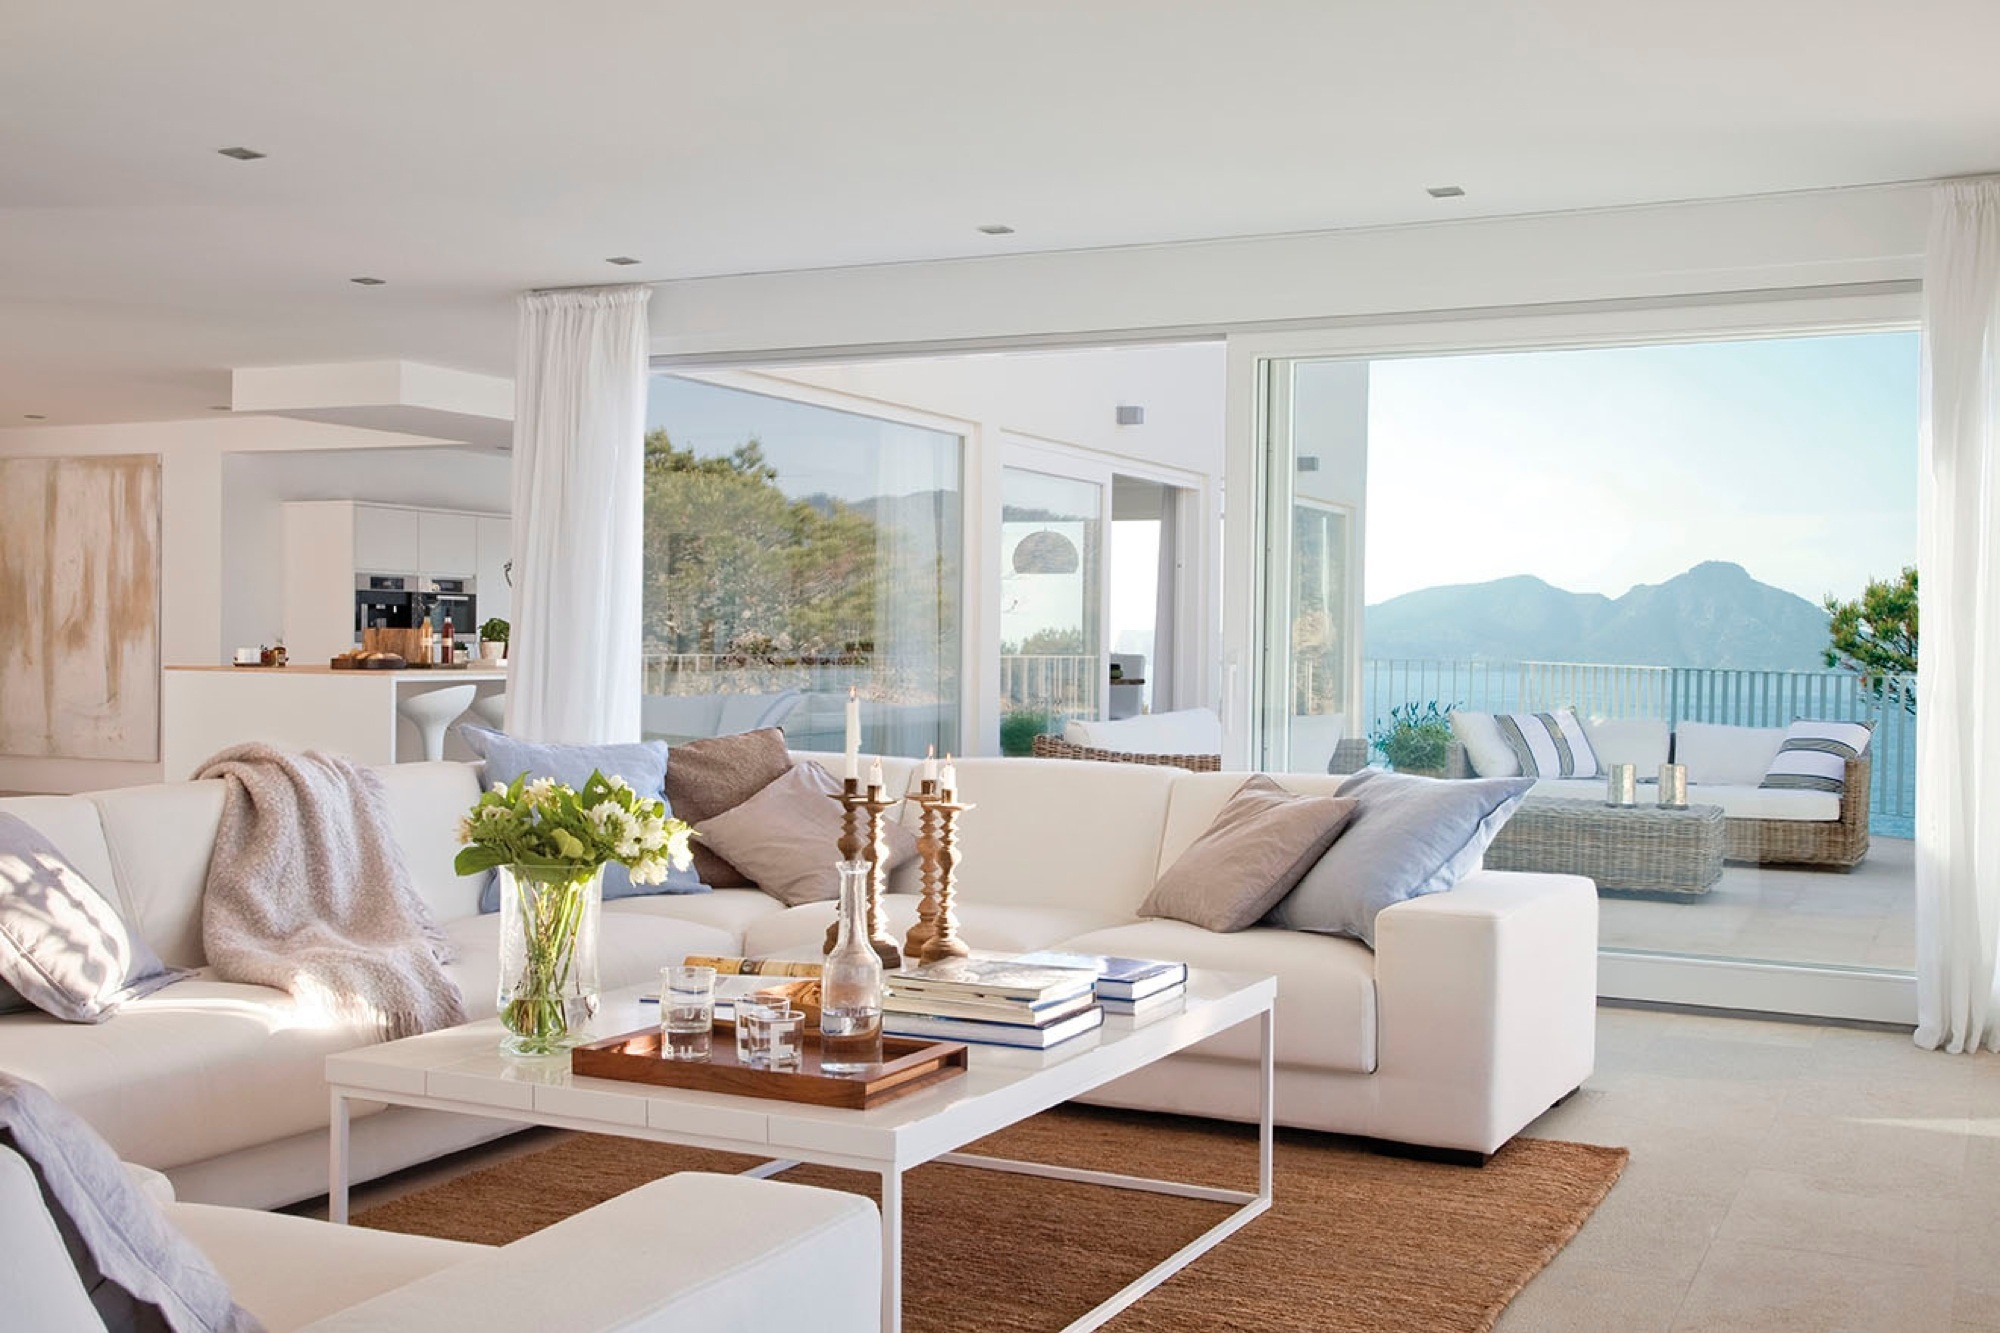 14 salones con vistas al mar - Salon en blanco ...